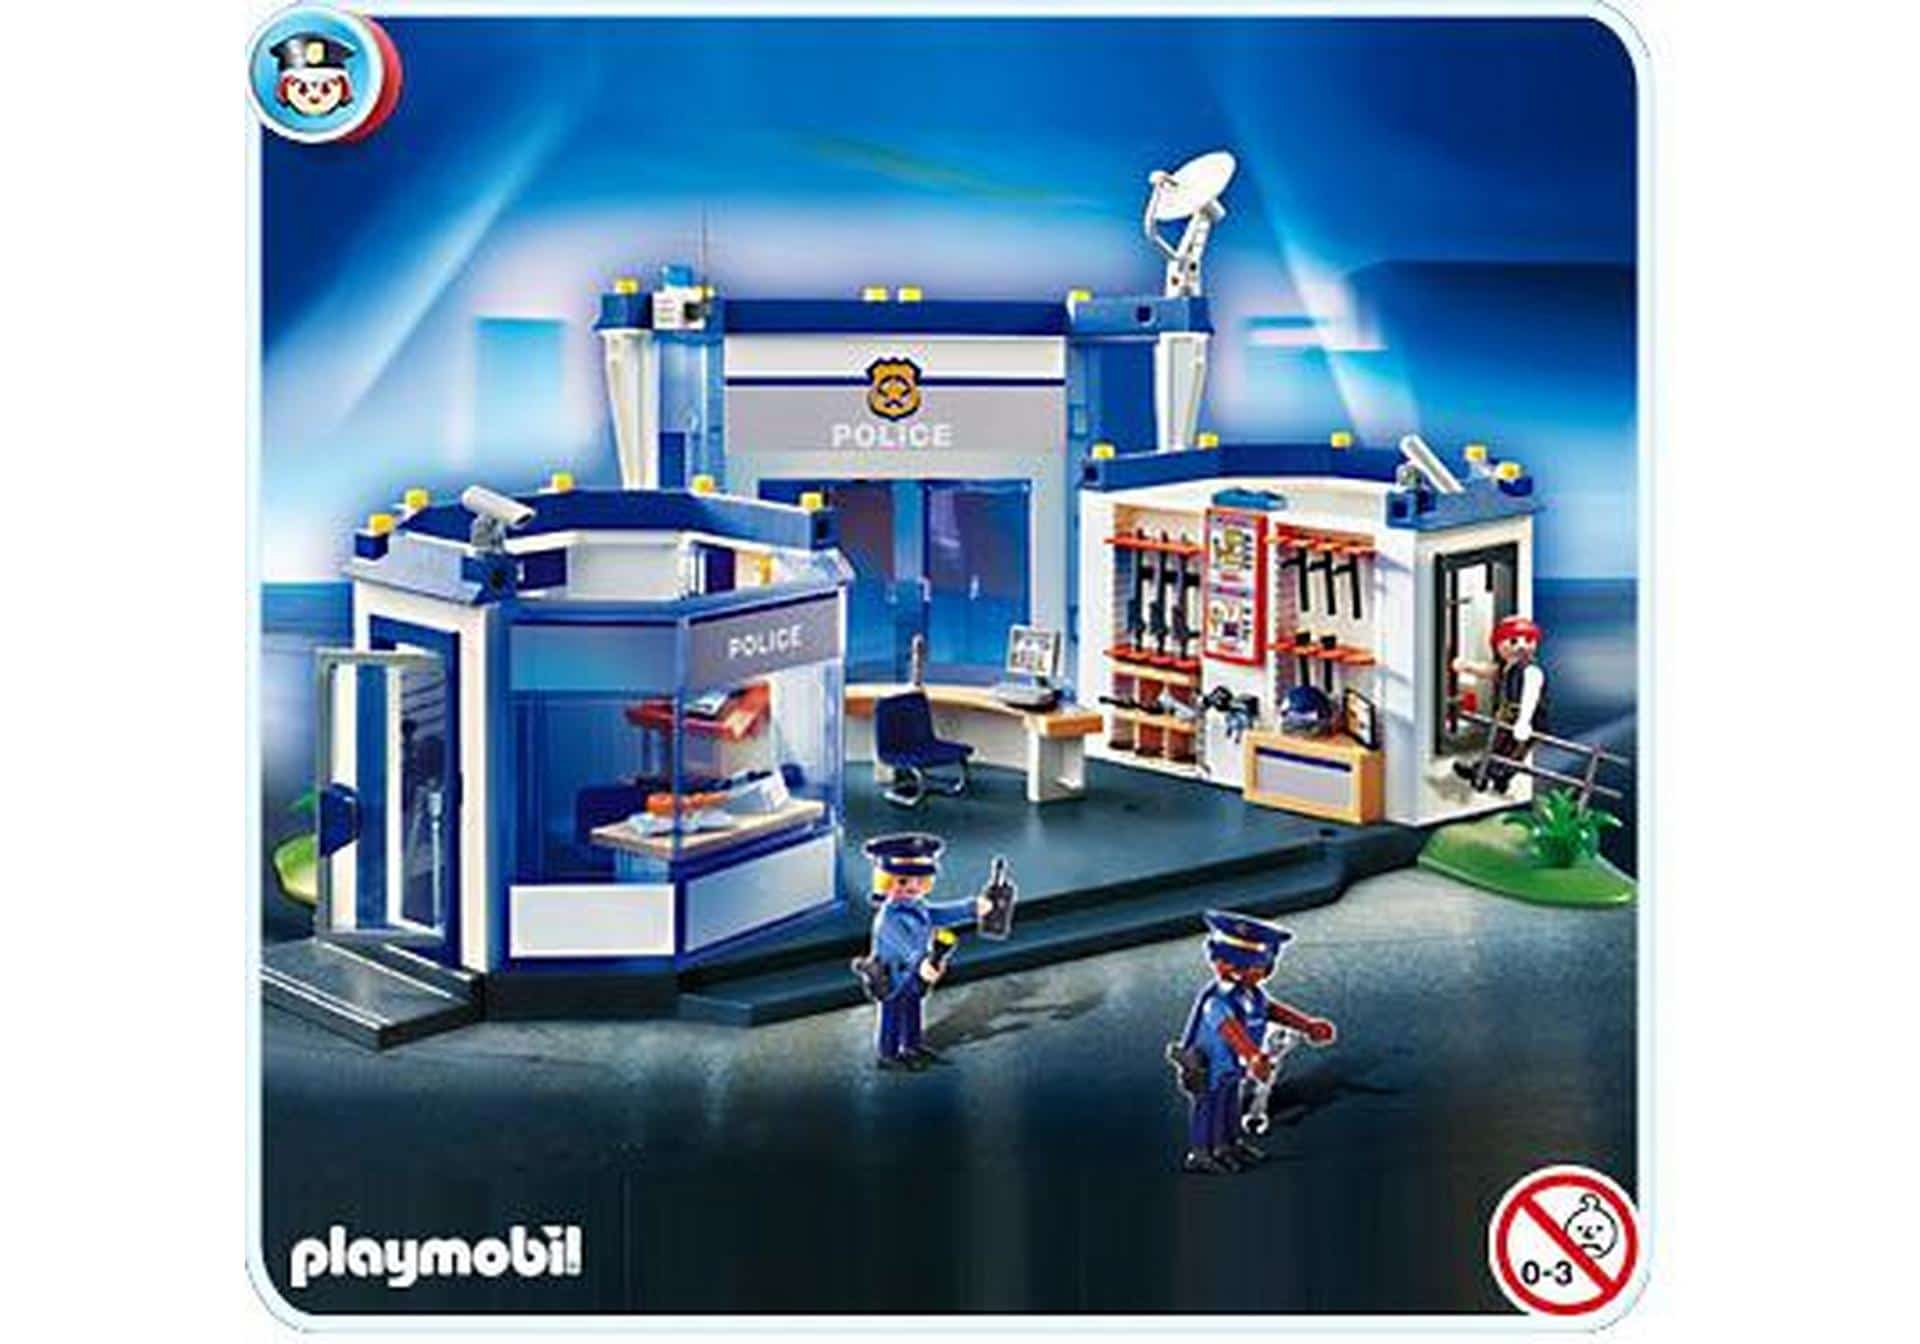 commissariat police playmobil 4264